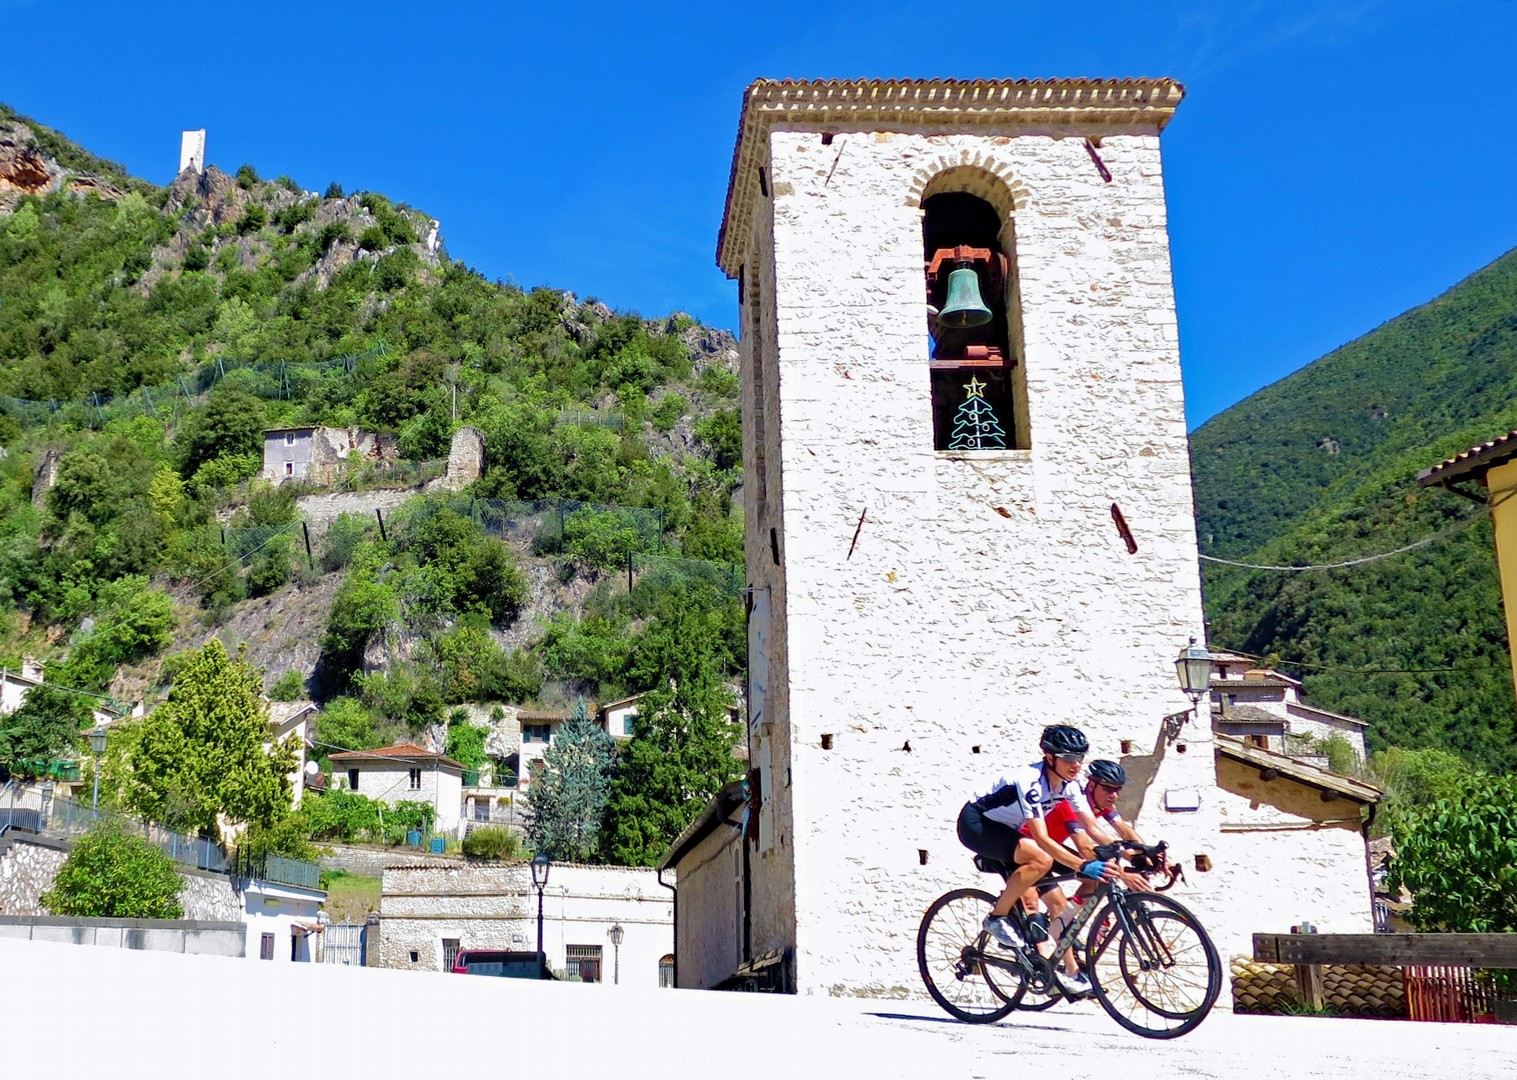 guided-road-cycling-holiday-italy.jpg - Italy - Grand Traverse - South to North (22 days) - Guided Road Cycling Holiday - Italia Road Cycling